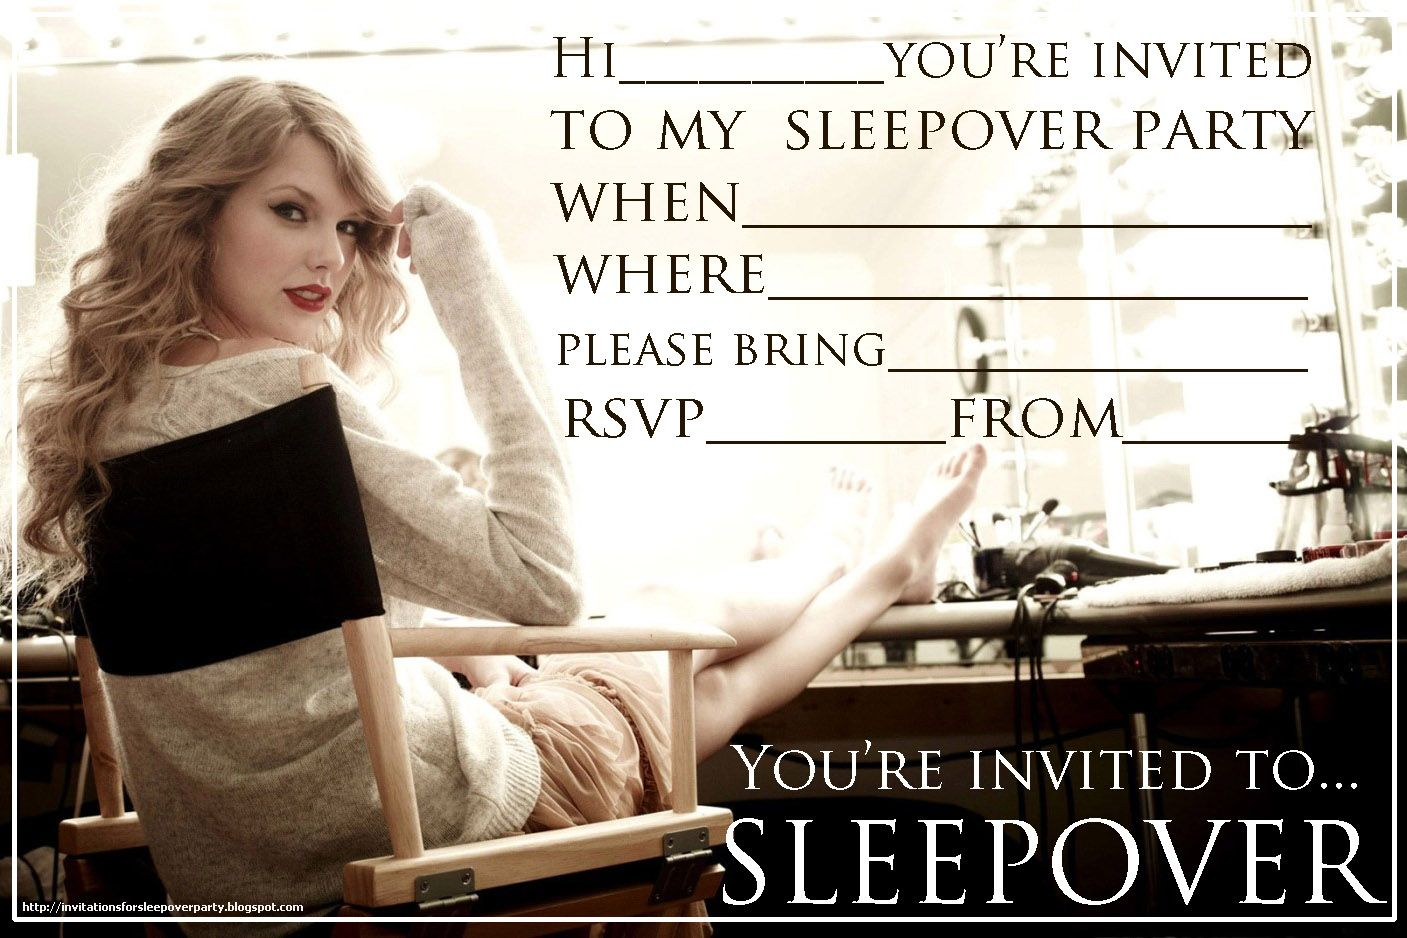 Invitations for sleepover party featuring taylor swift free to invitations for sleepover party featuring taylor swift free to print then personalise with your own partys details filmwisefo